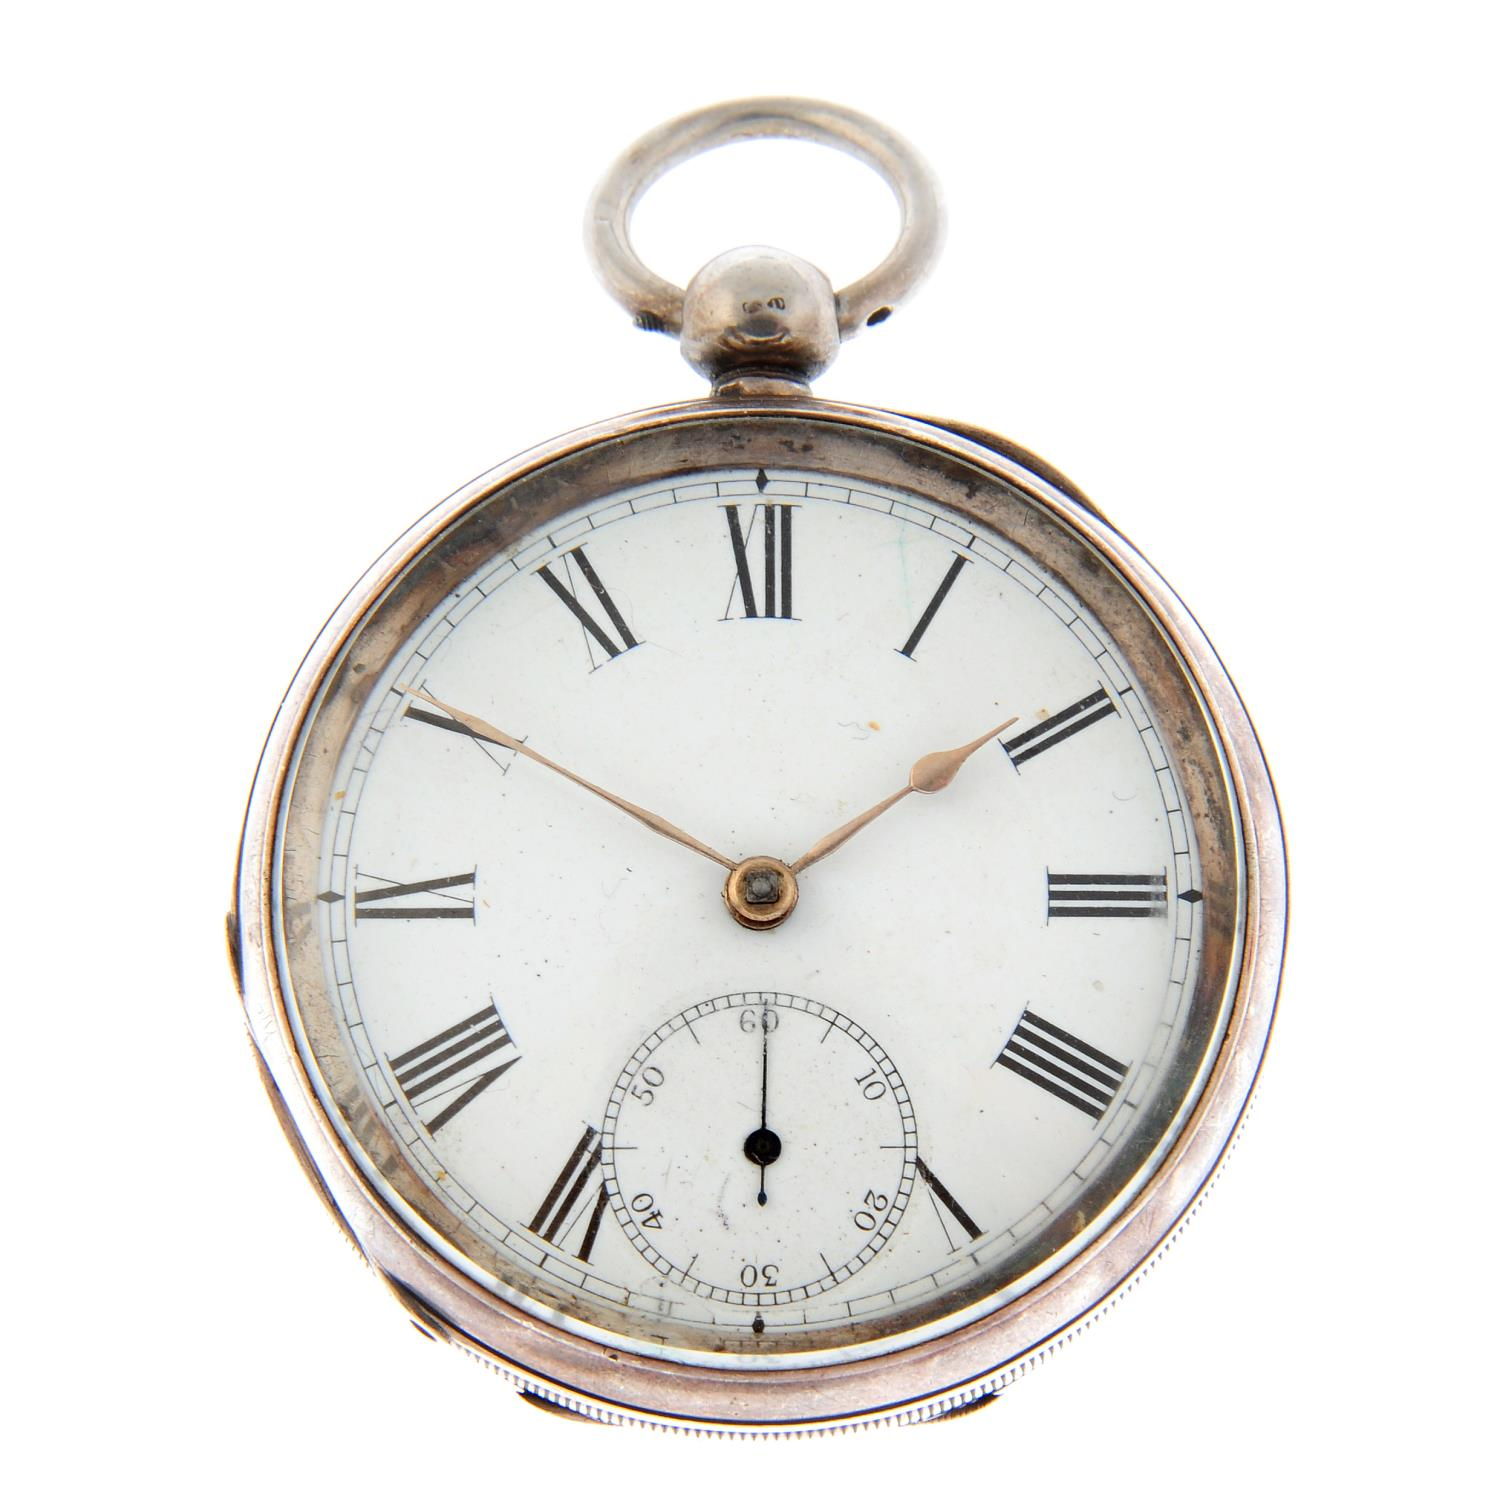 An open face pocket watch by Waltham.